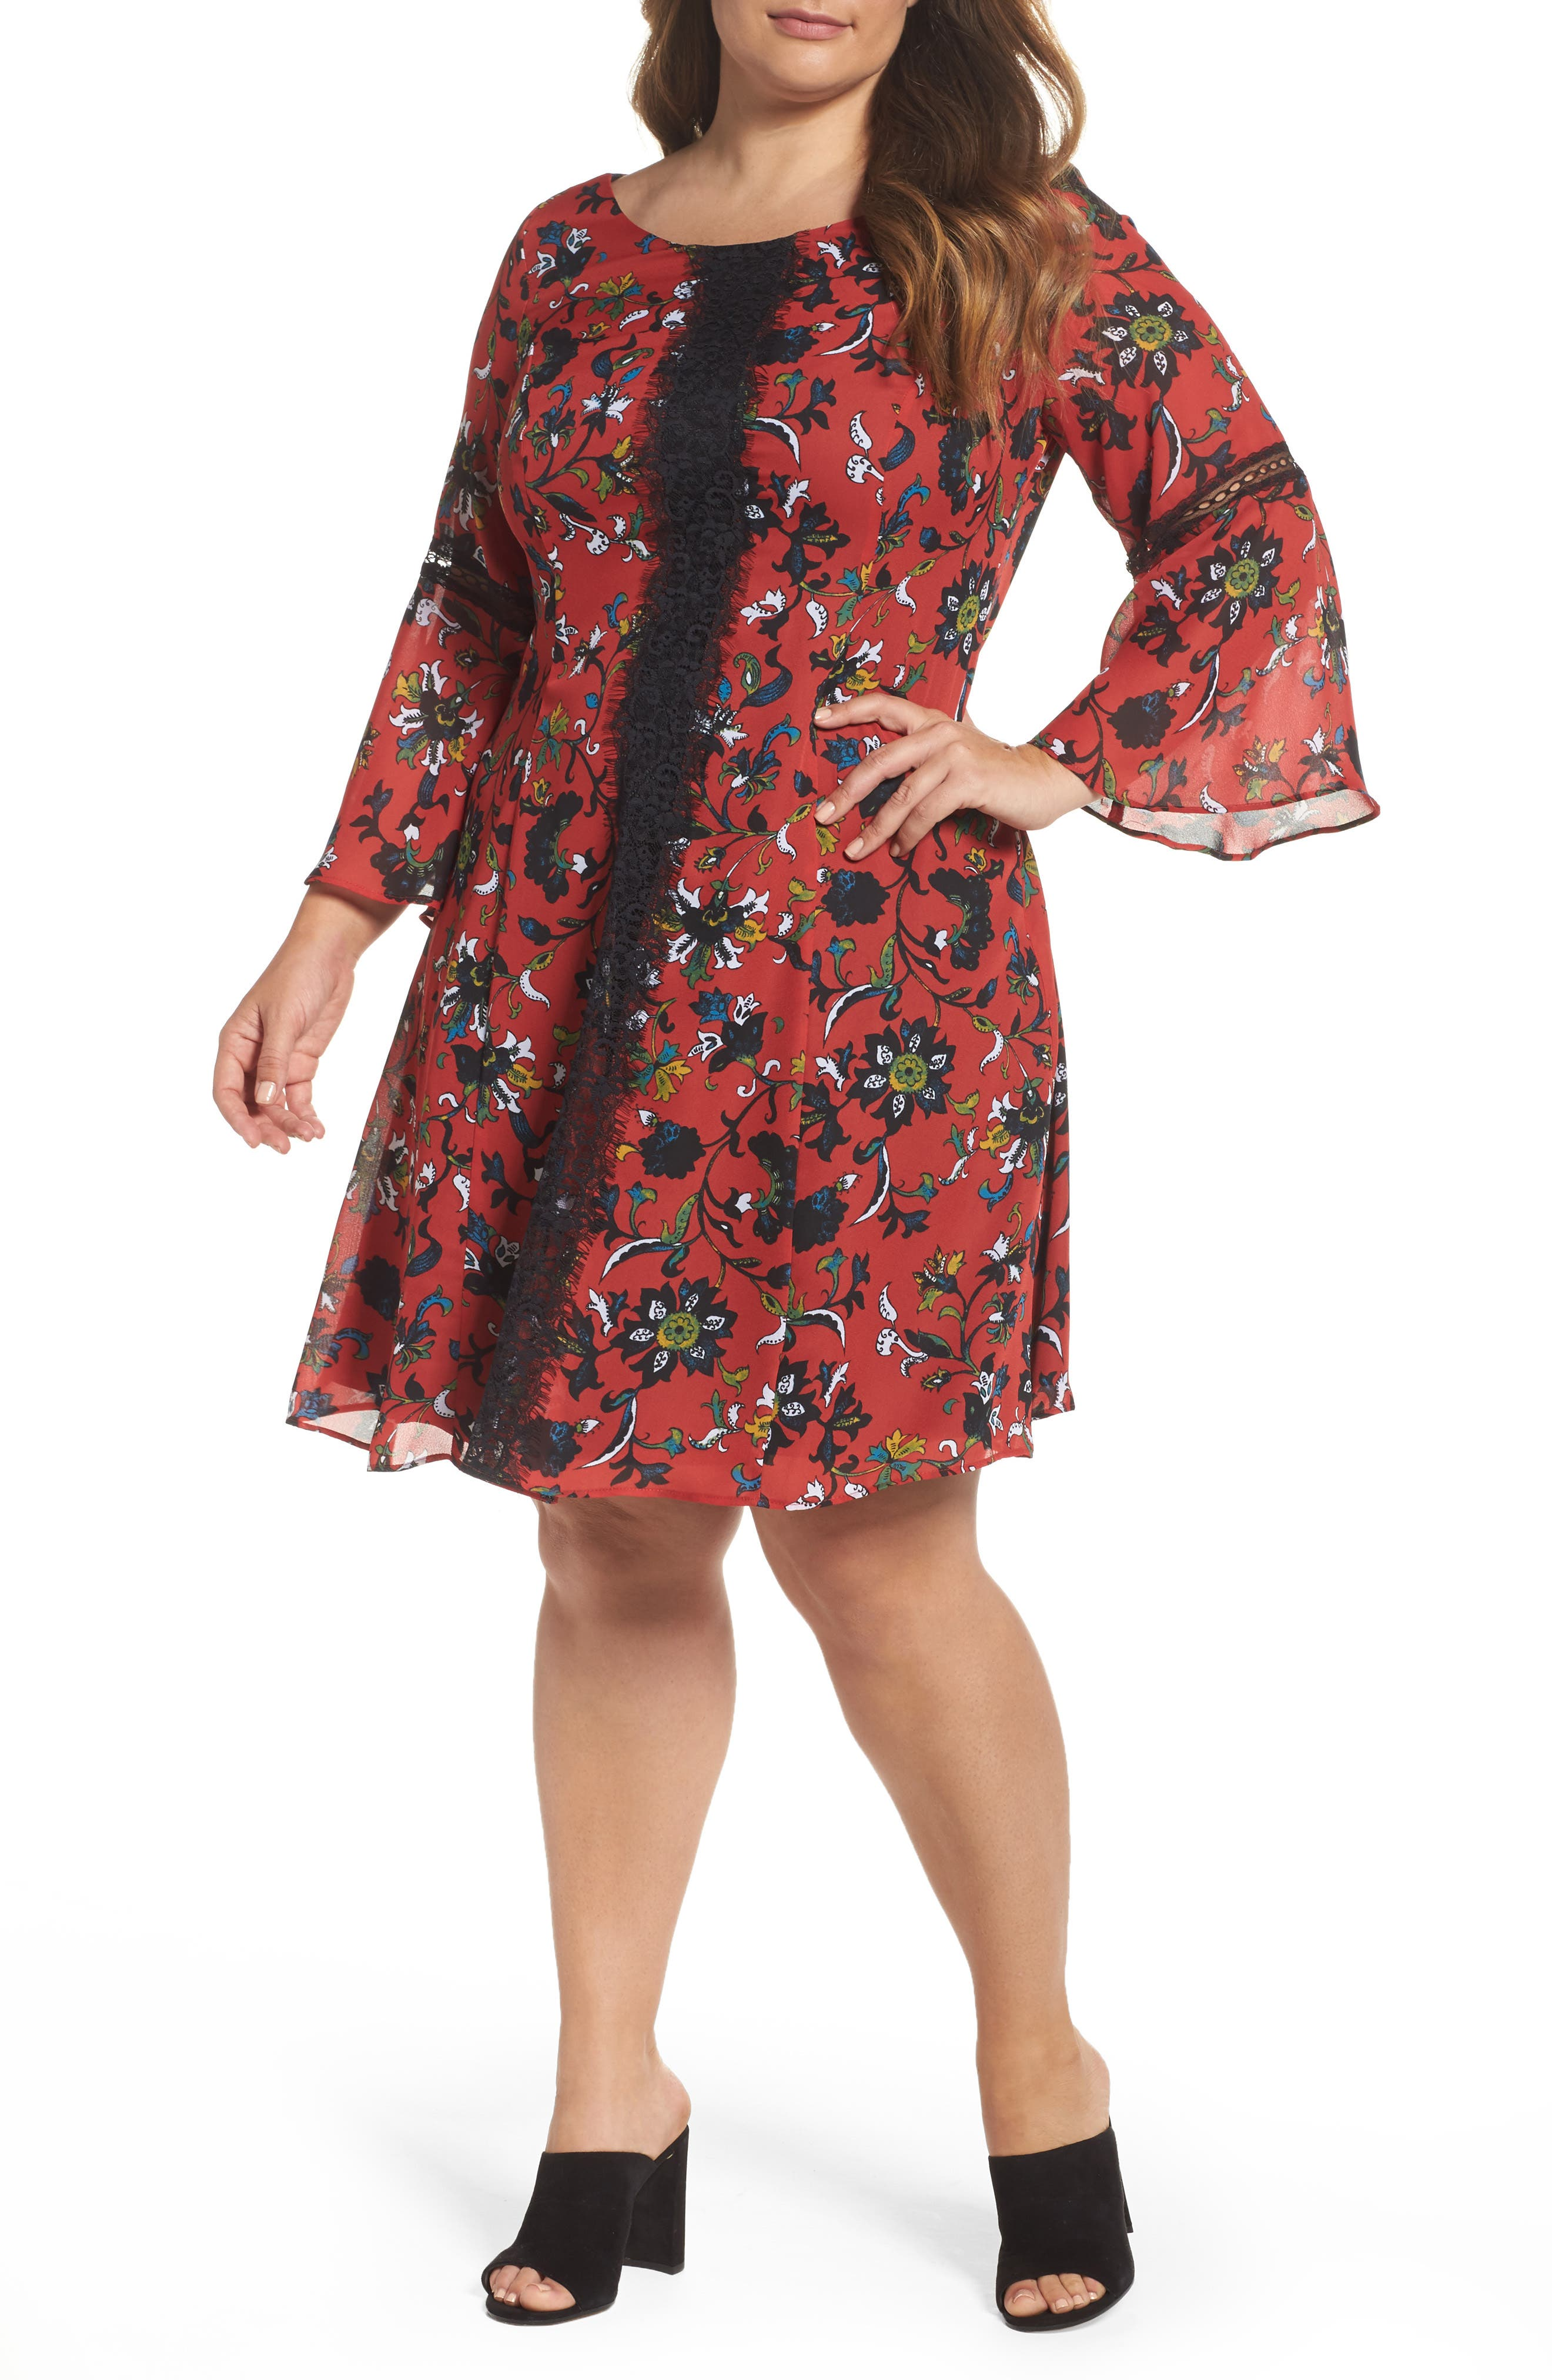 Gabby Skye Lace Trim Floral Bell Sleeve Dress (Plus Size)